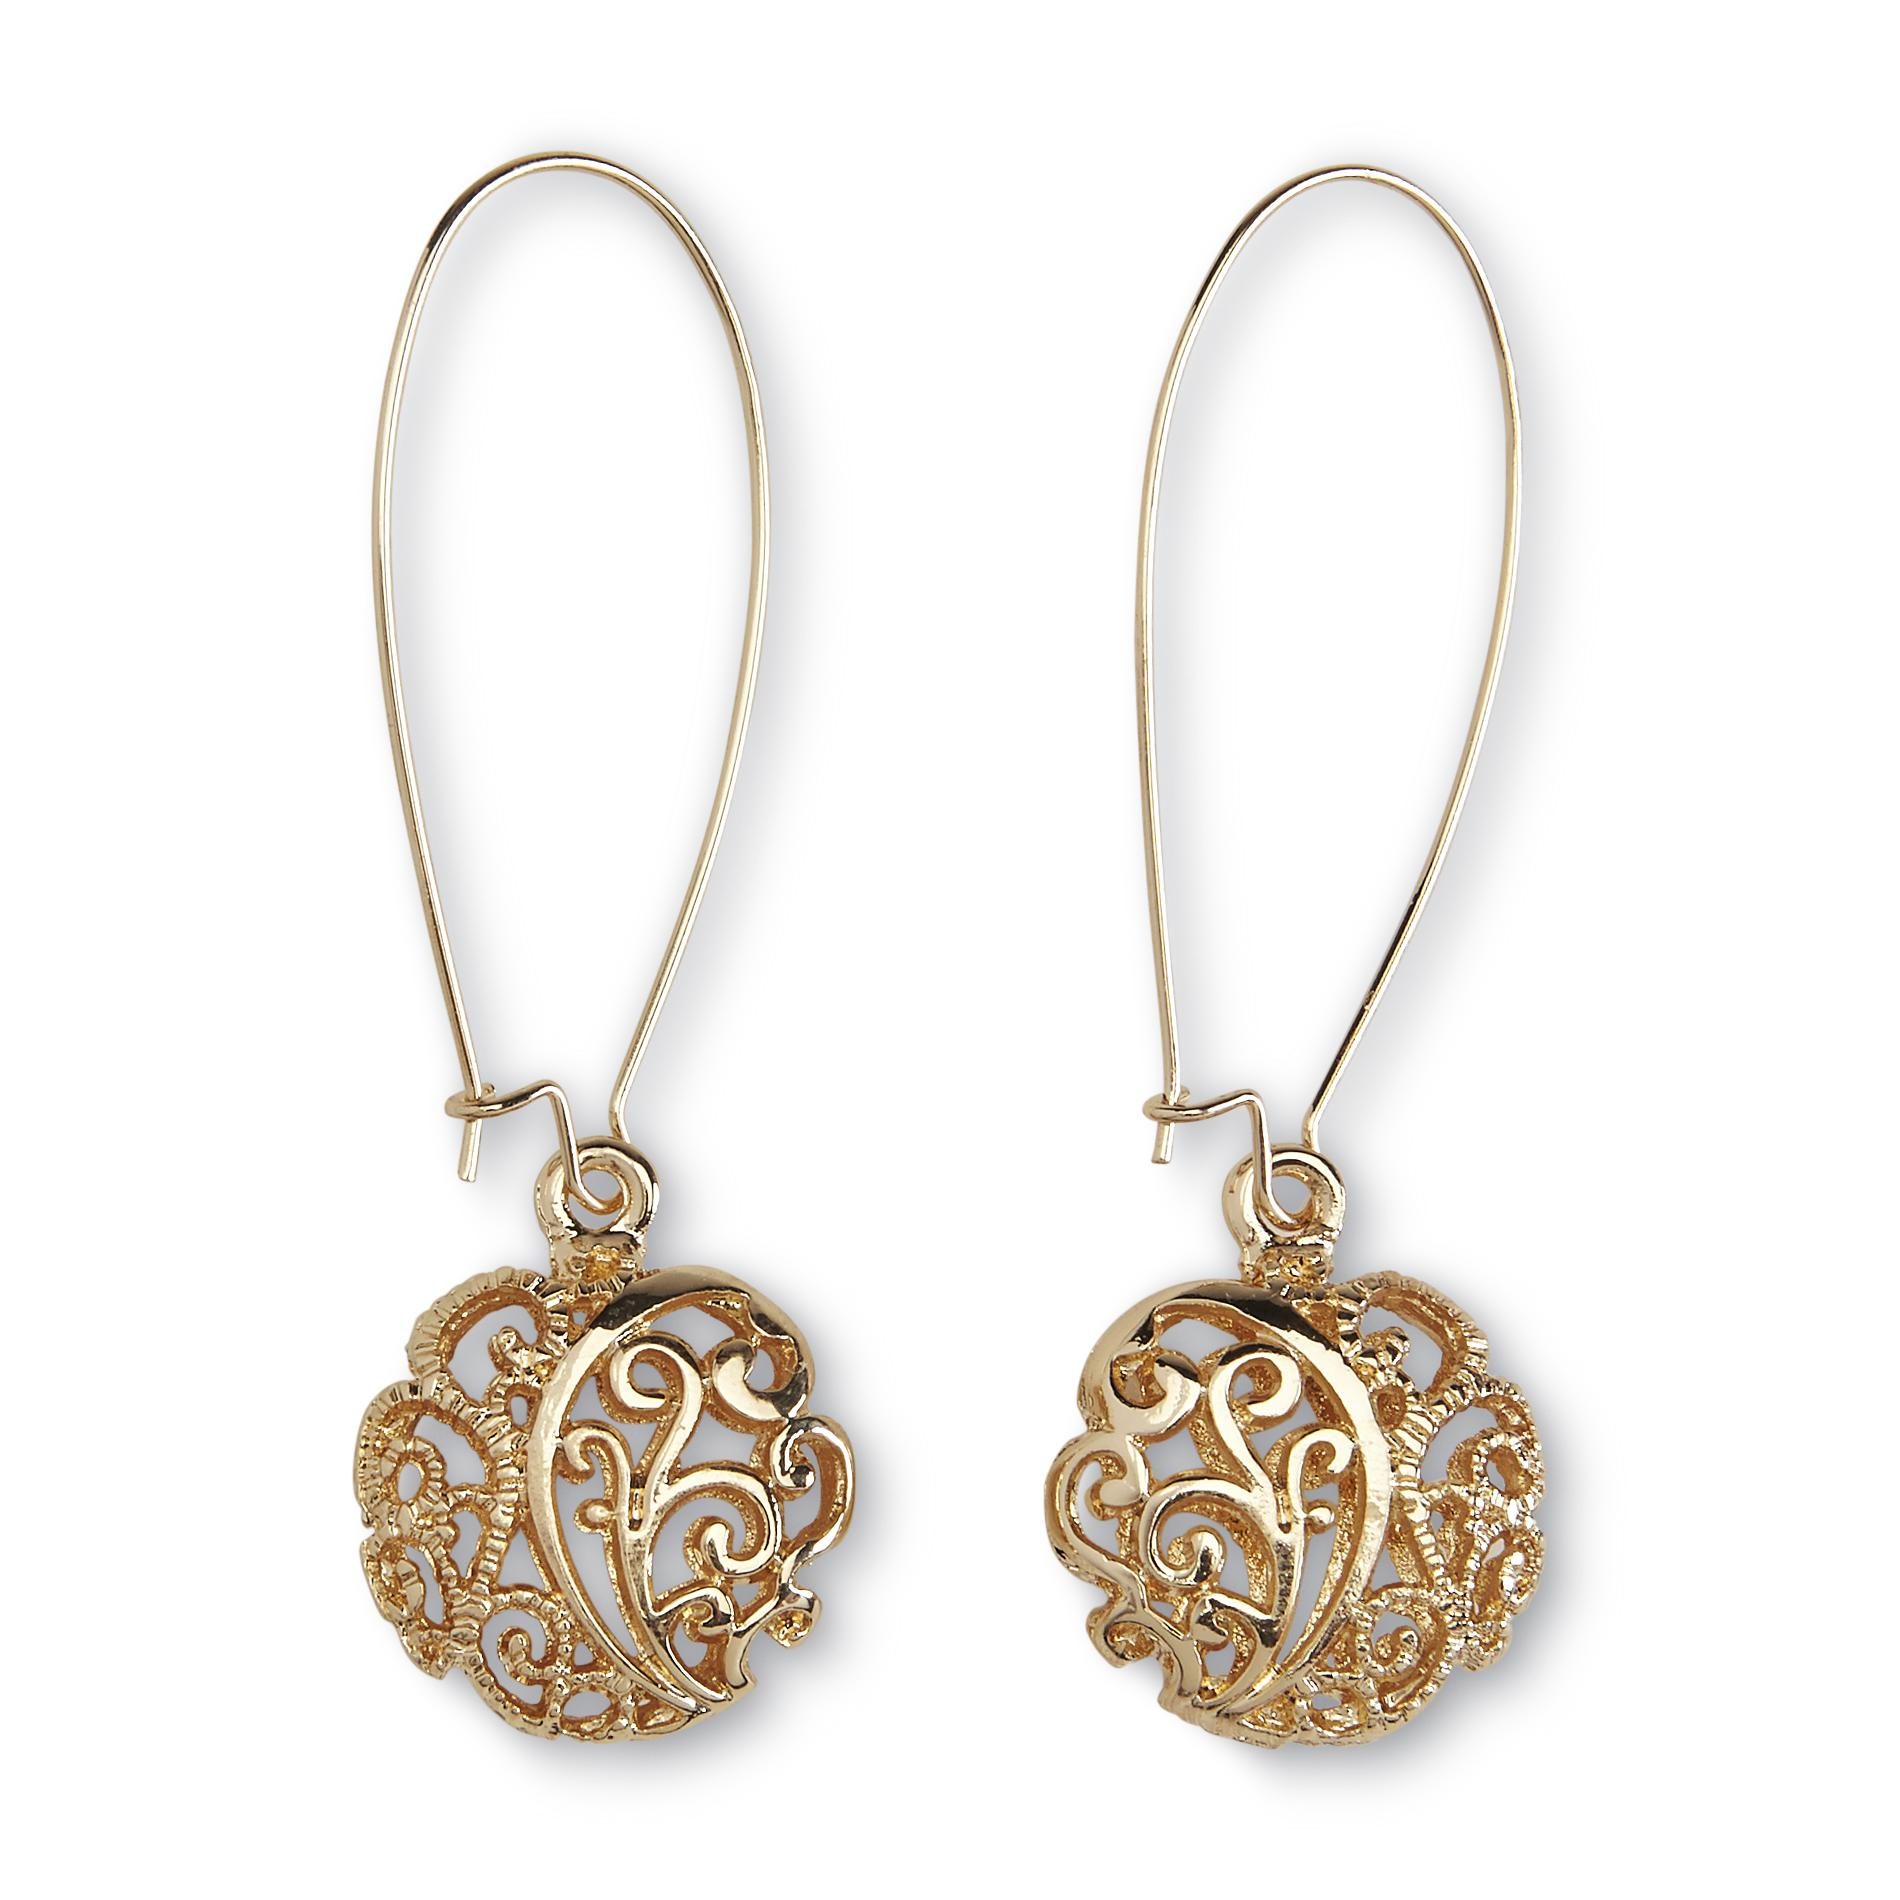 Attention Women's Goldtone Filigree Threader Earrings